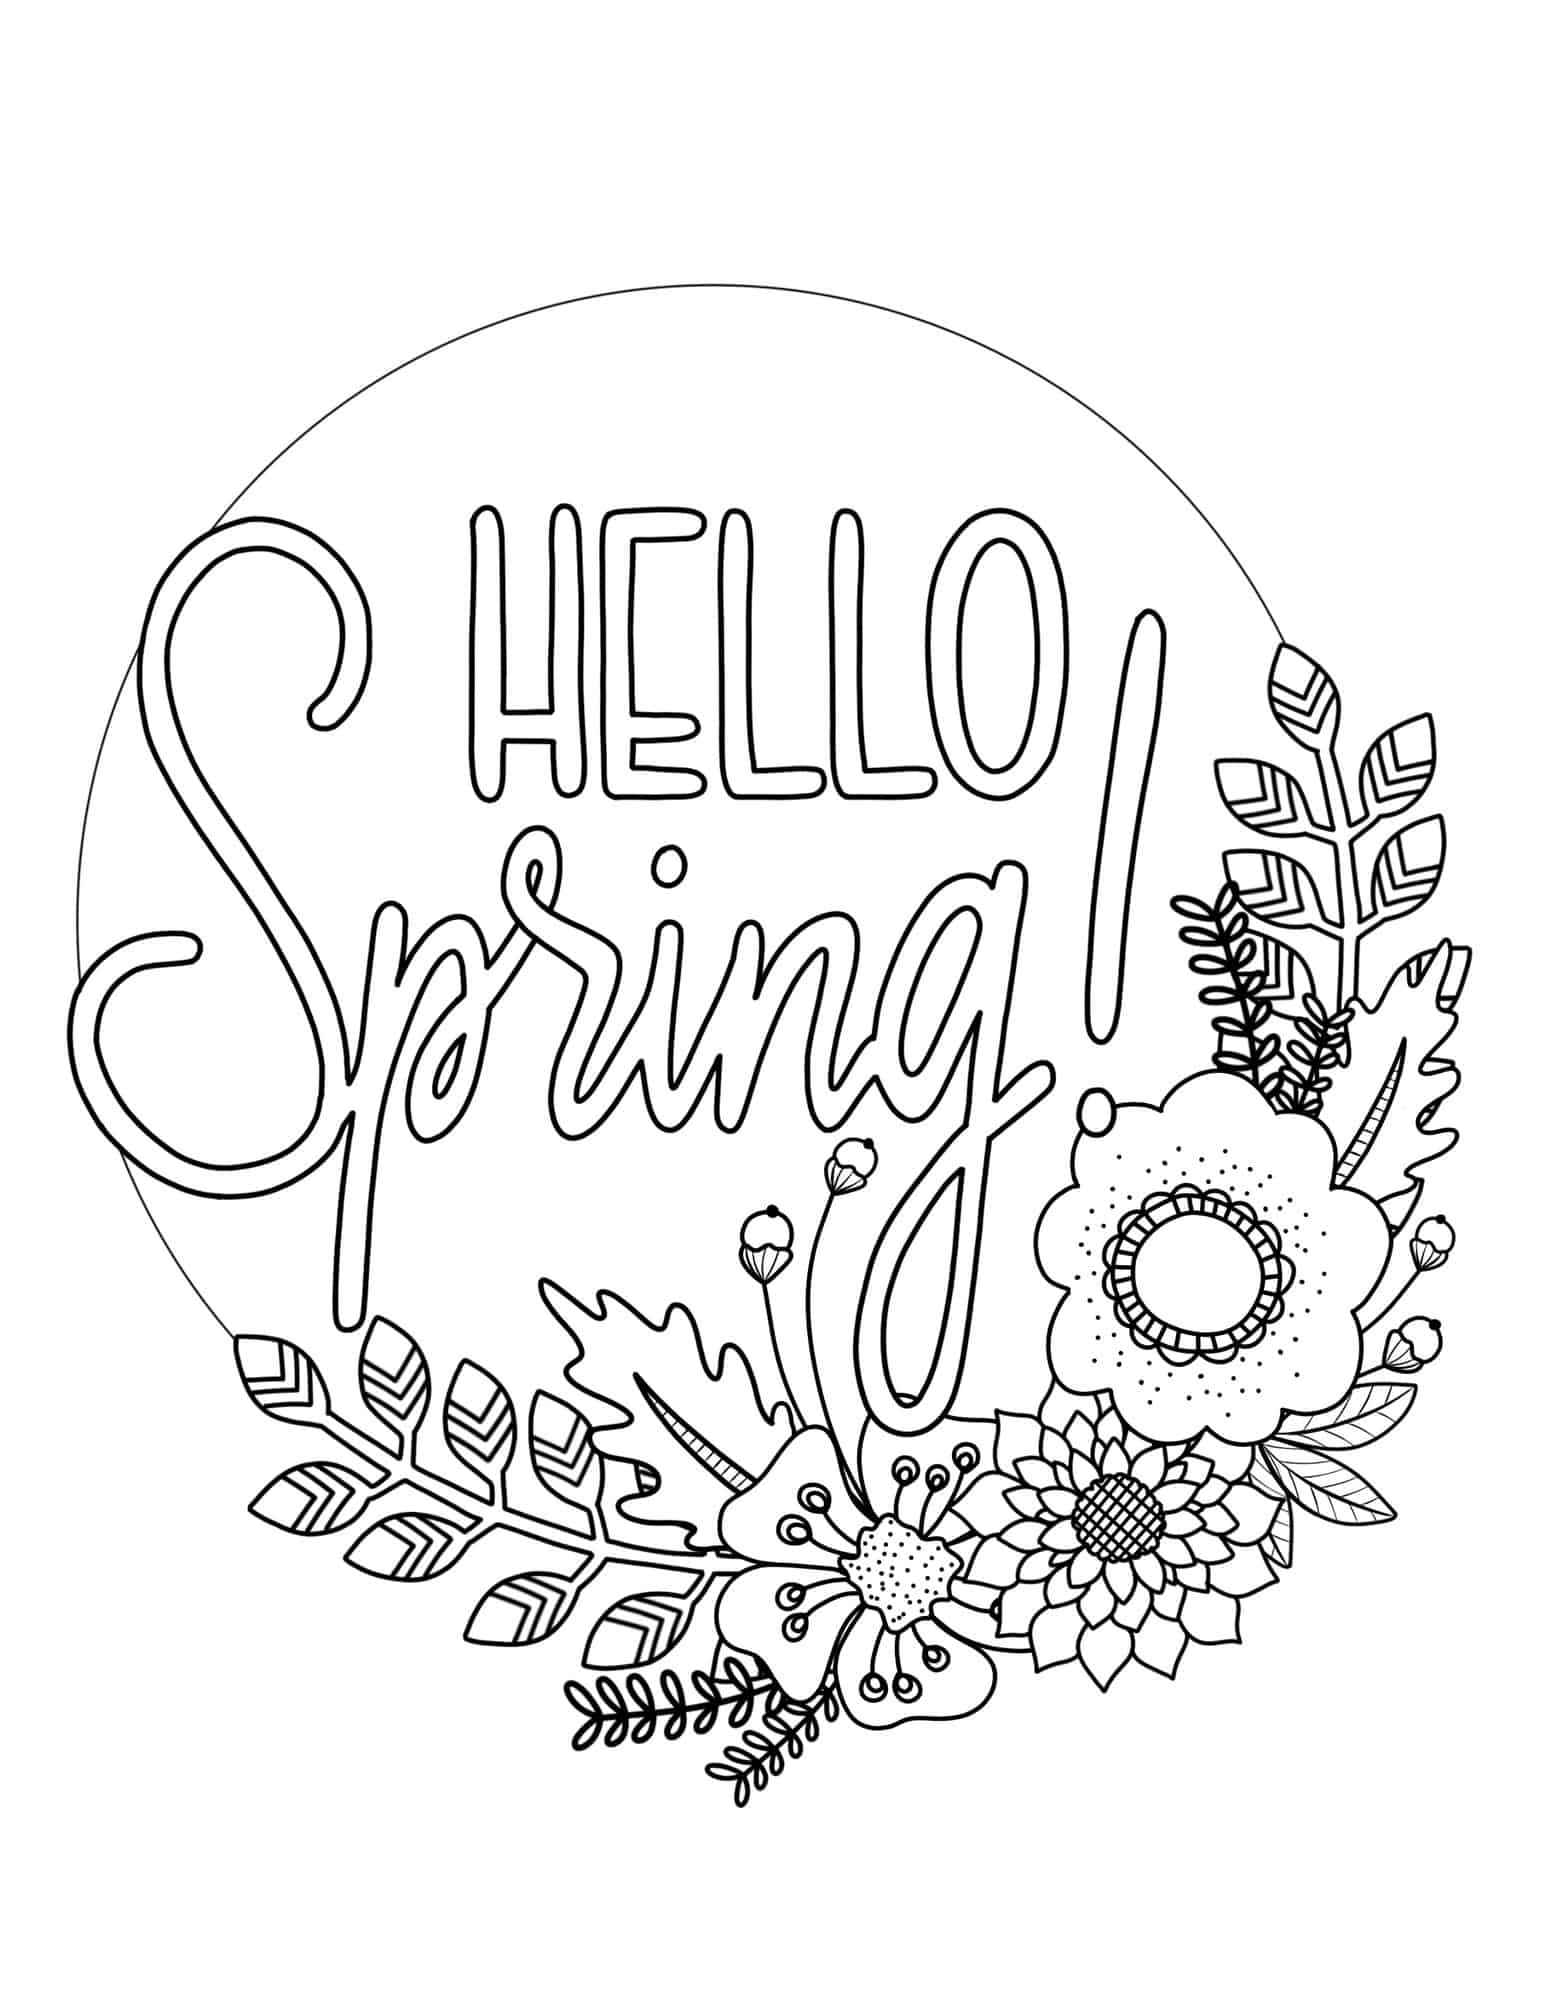 Sprint coloring pages ~ Printable Spring Coloring Page - Over The Big Moon